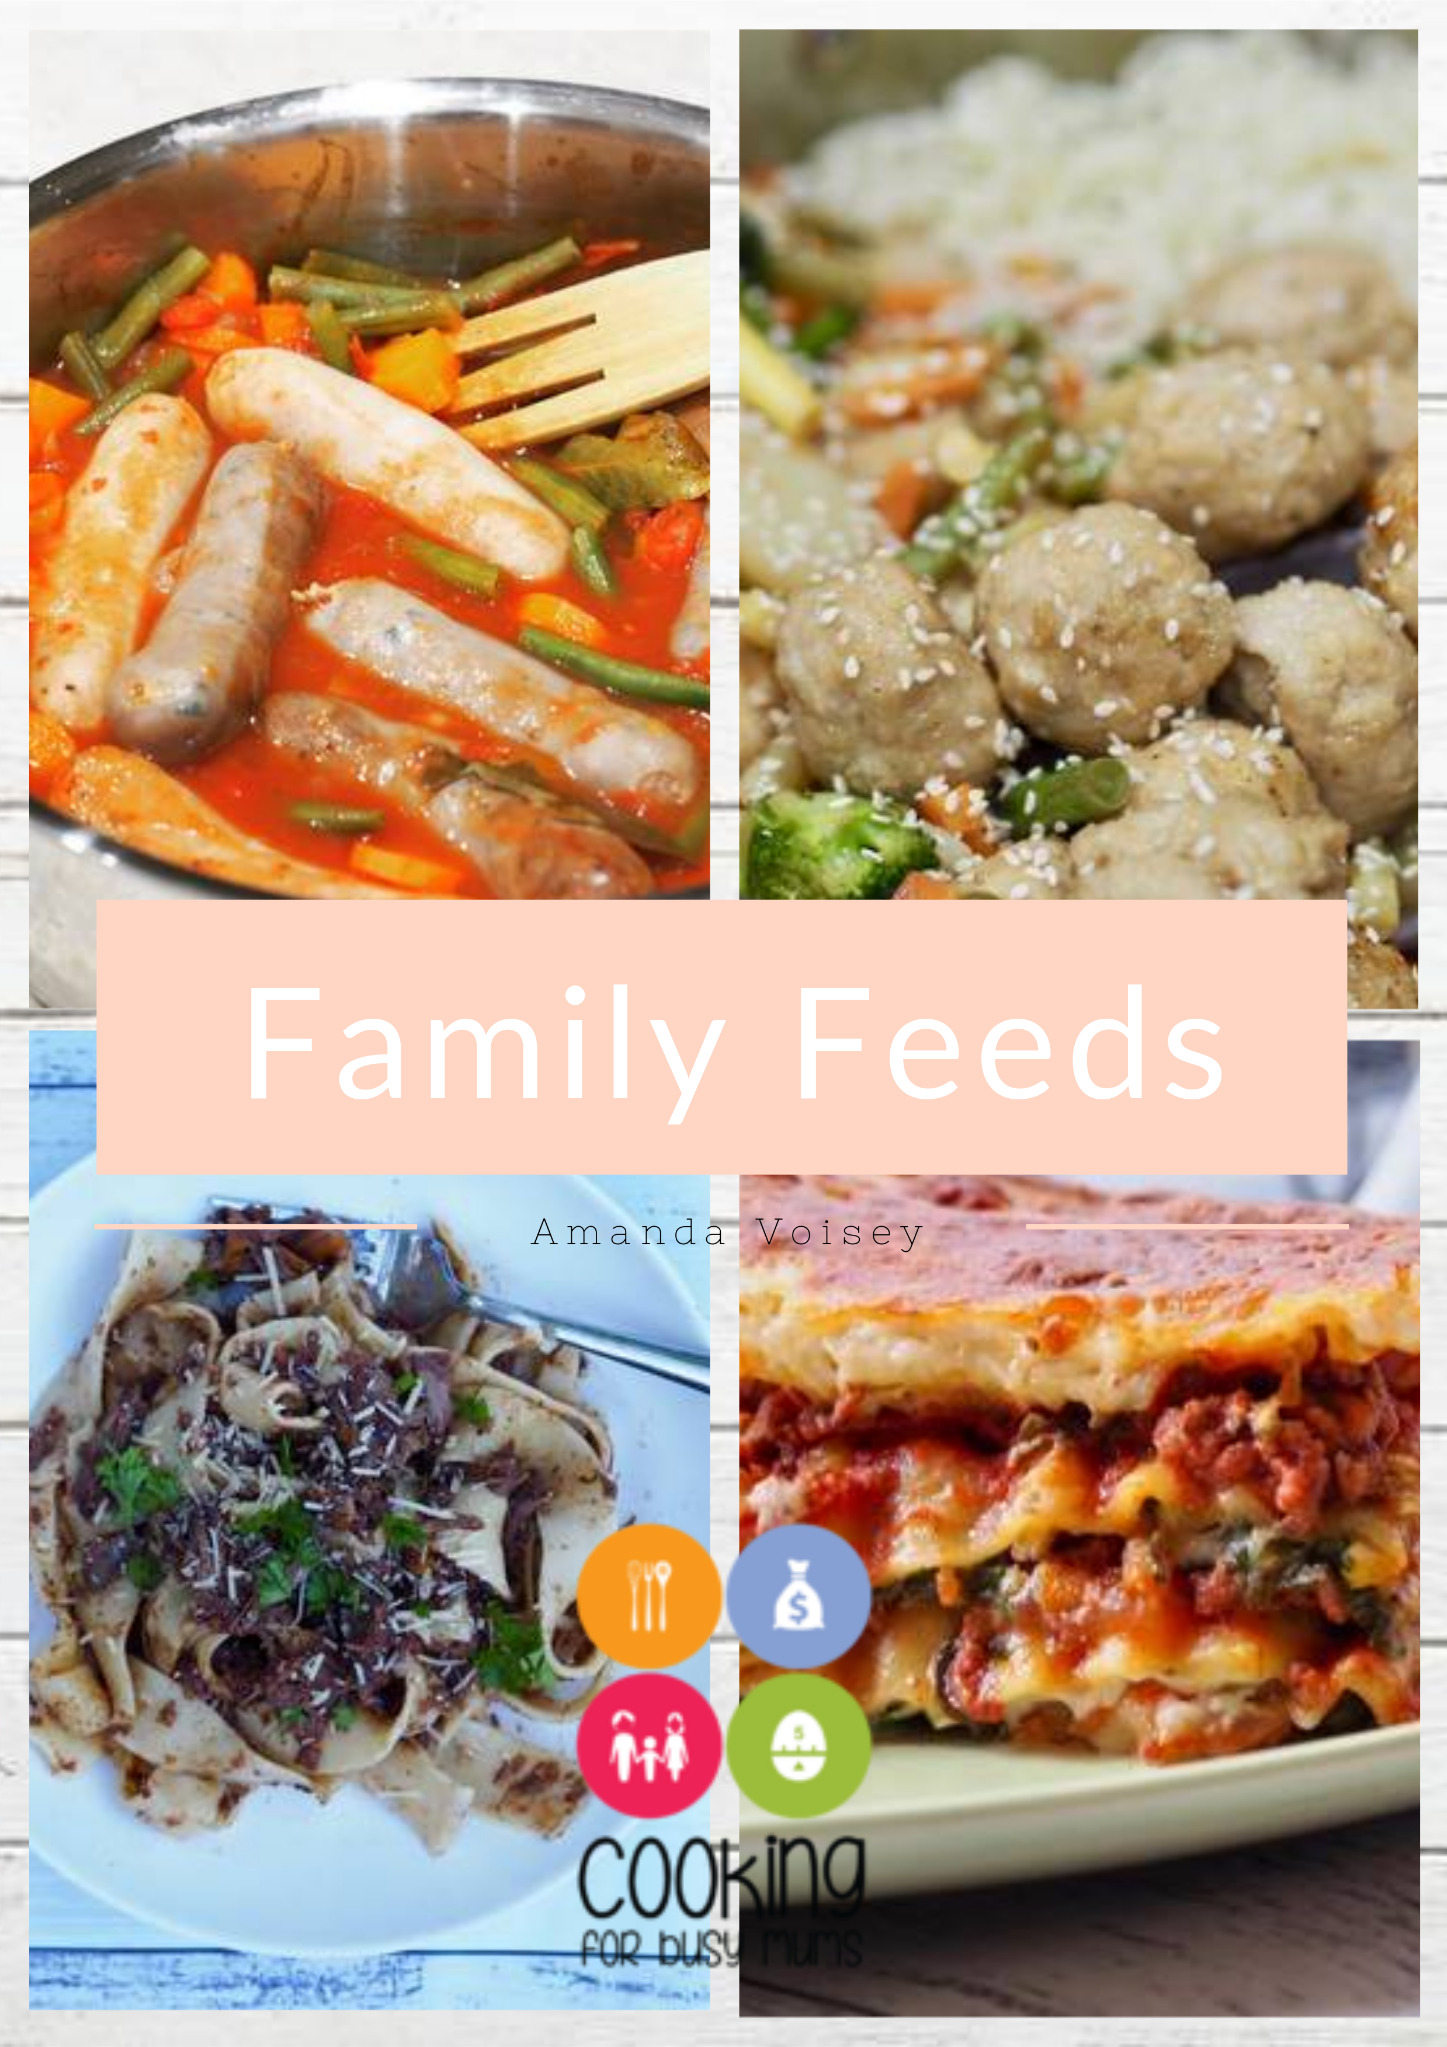 Family Feeds eBook